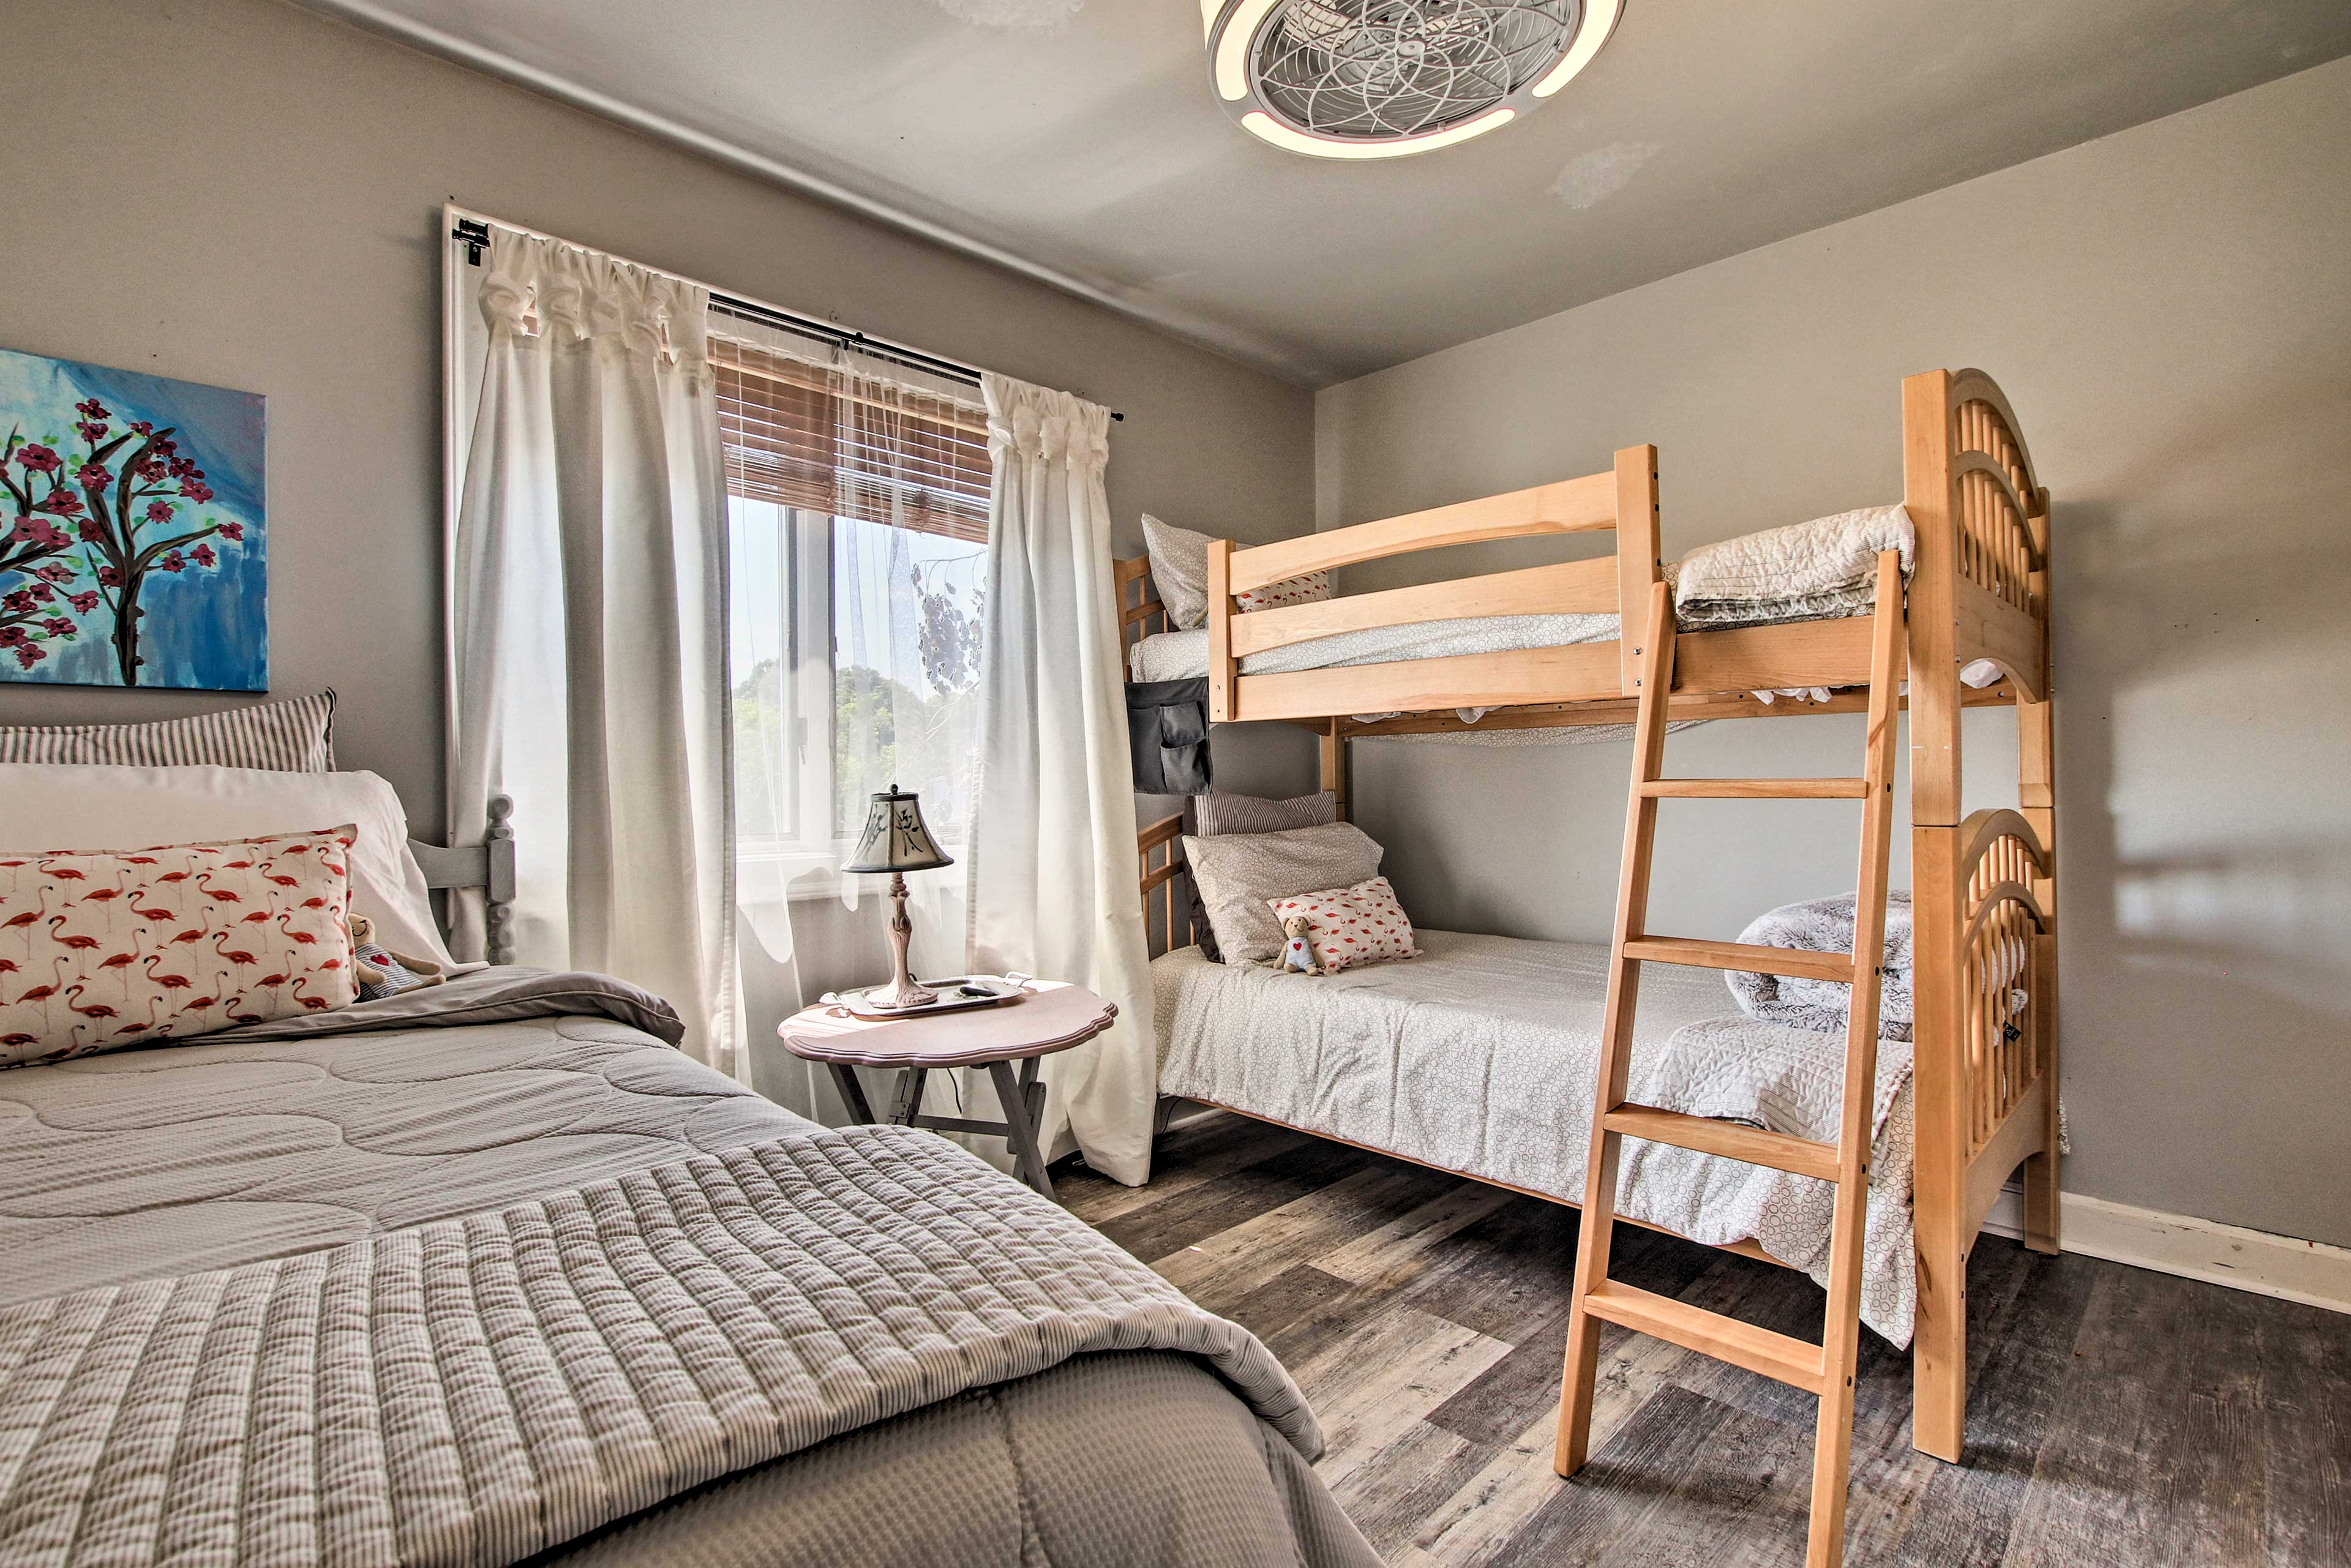 Kids will love sharing this room with a twin bunk bed!